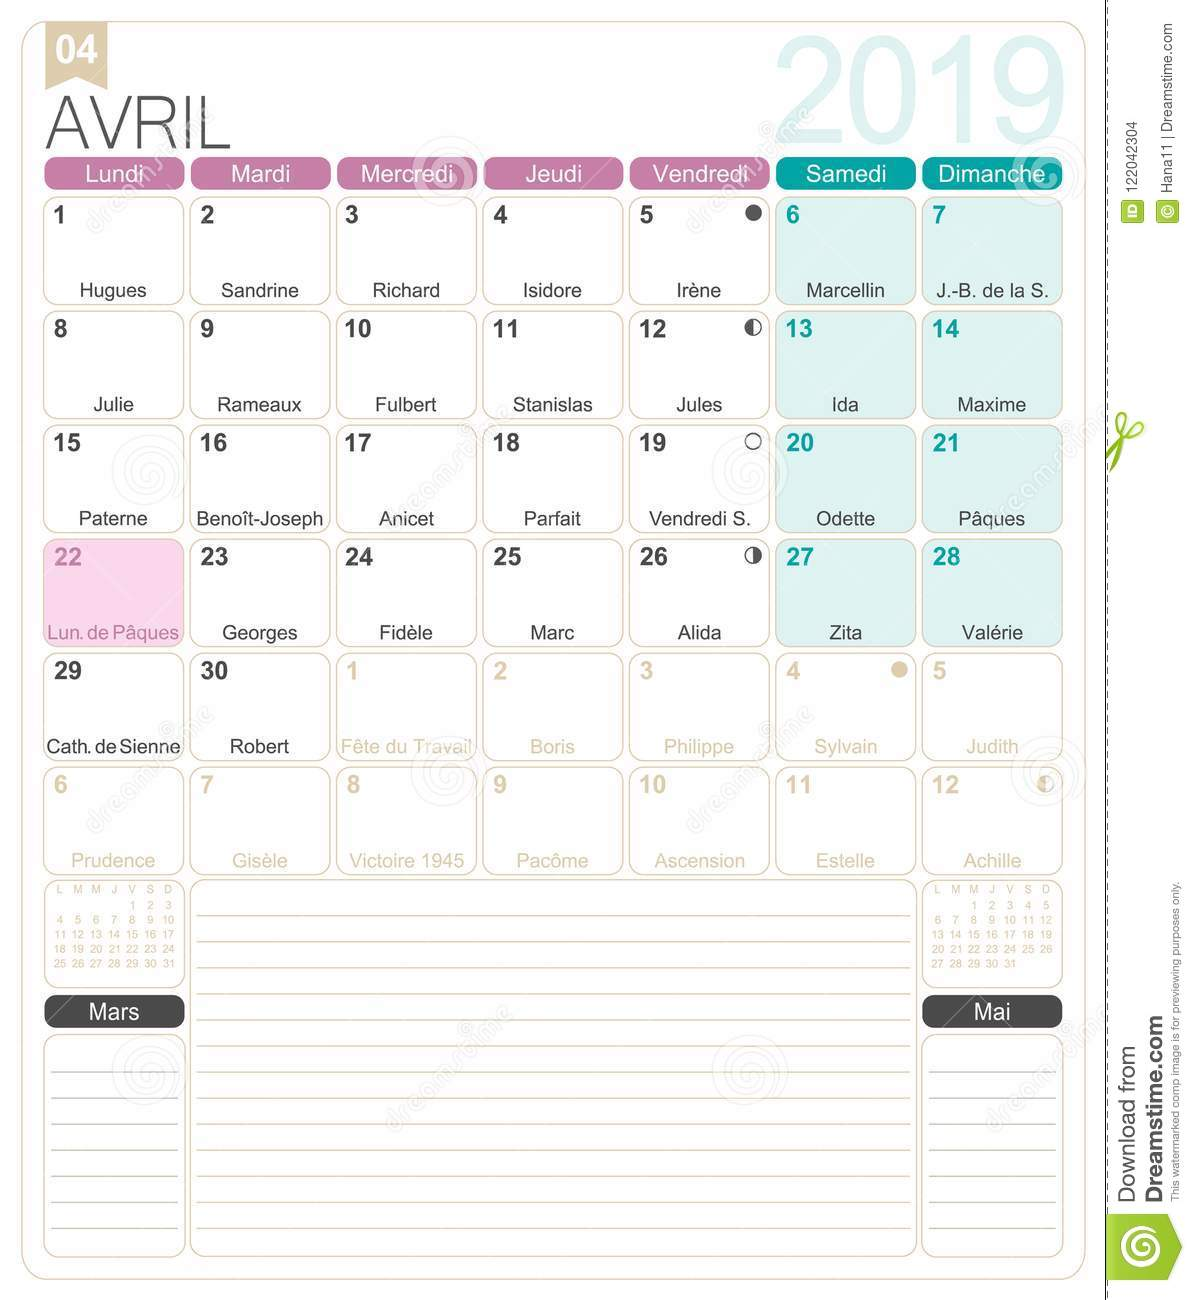 photo about April Printable referred to as French Calendar - April 2019 Inventory Vector - Example of